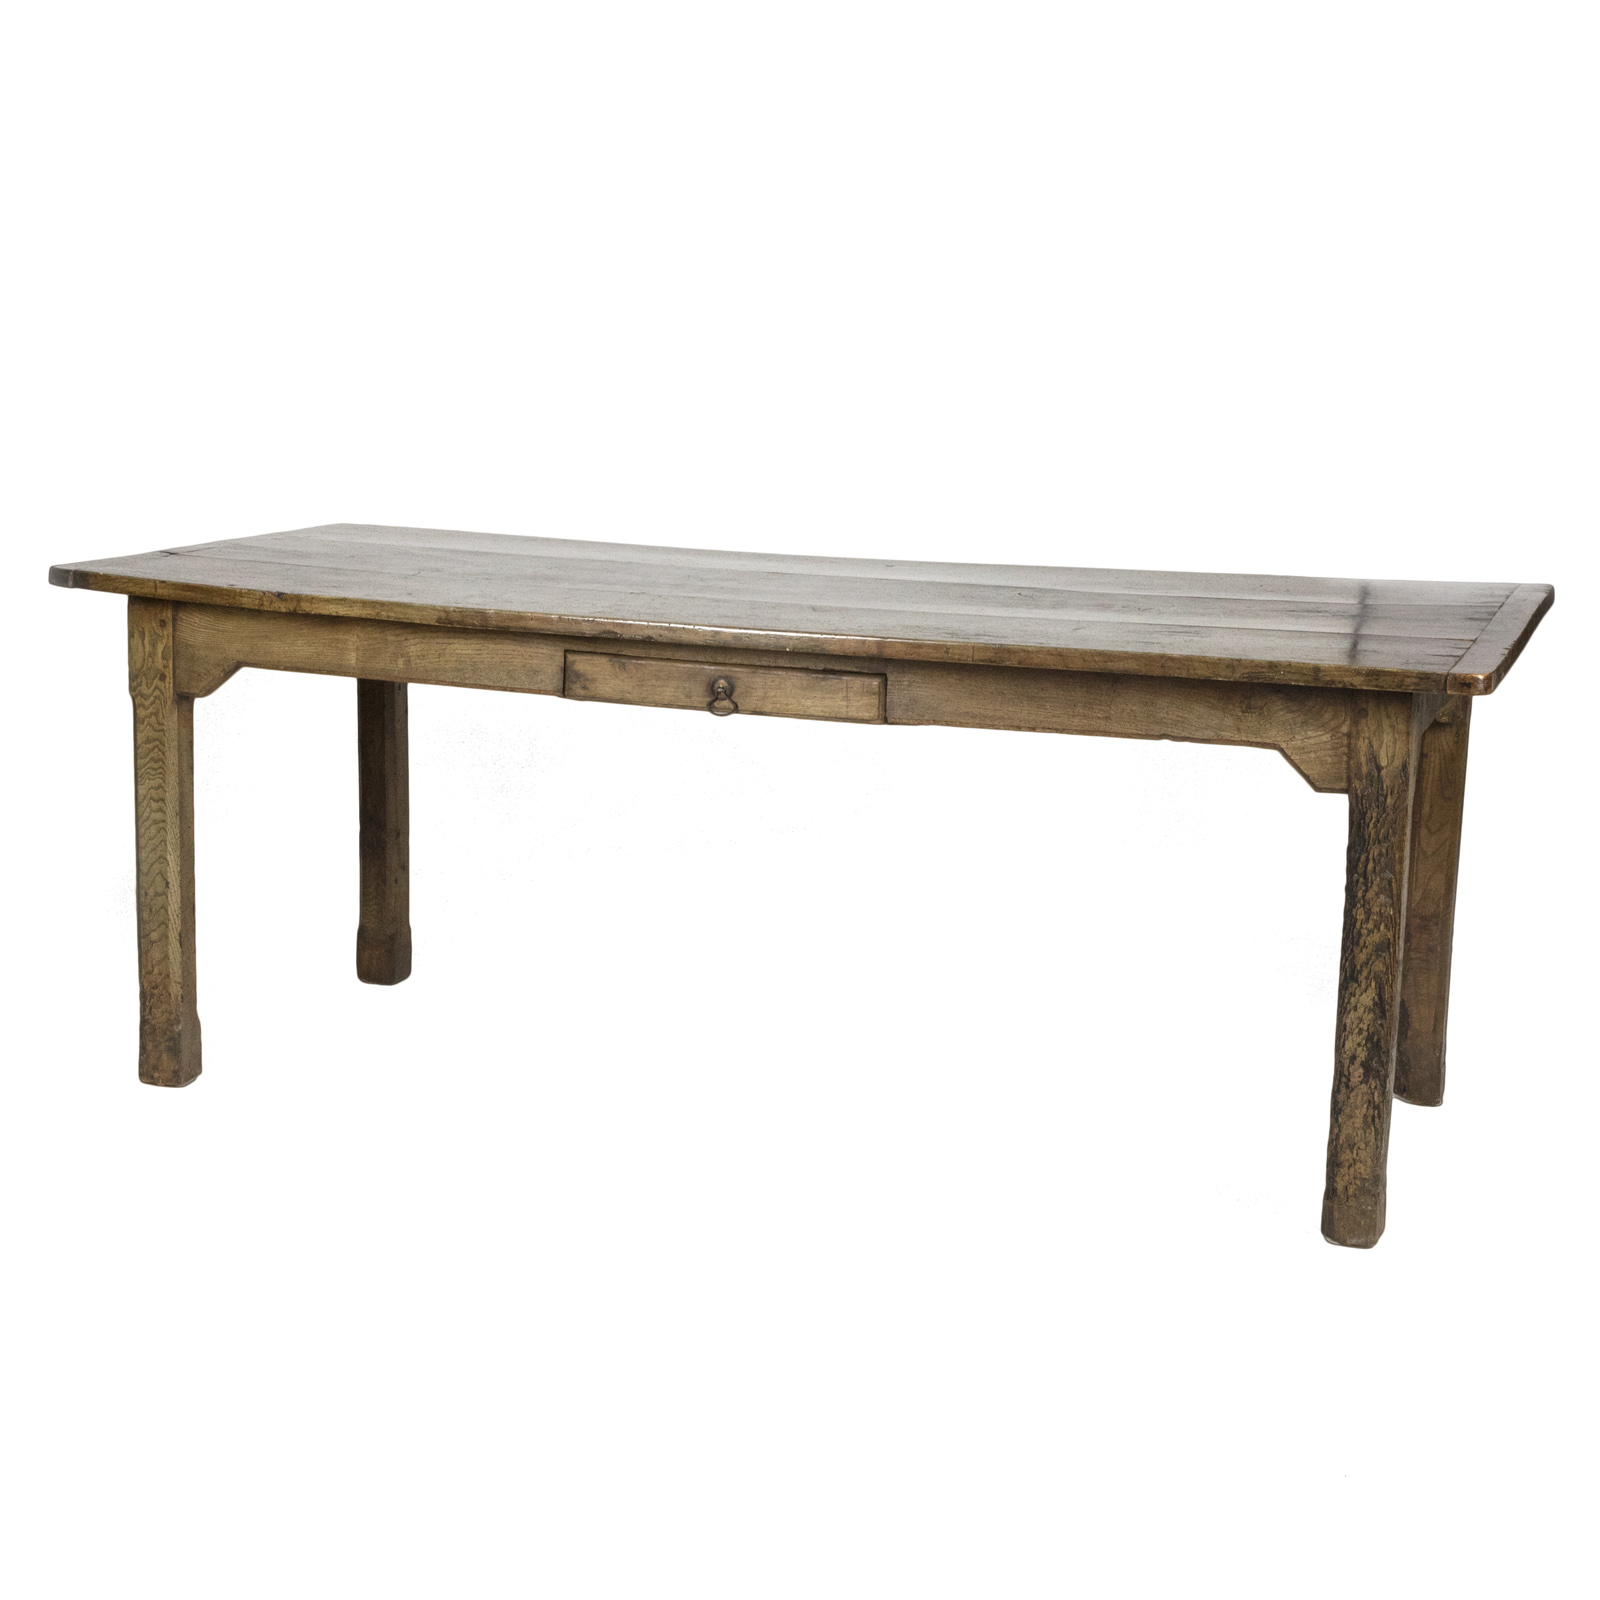 Authentic english country farm table 19th century 415 for England table